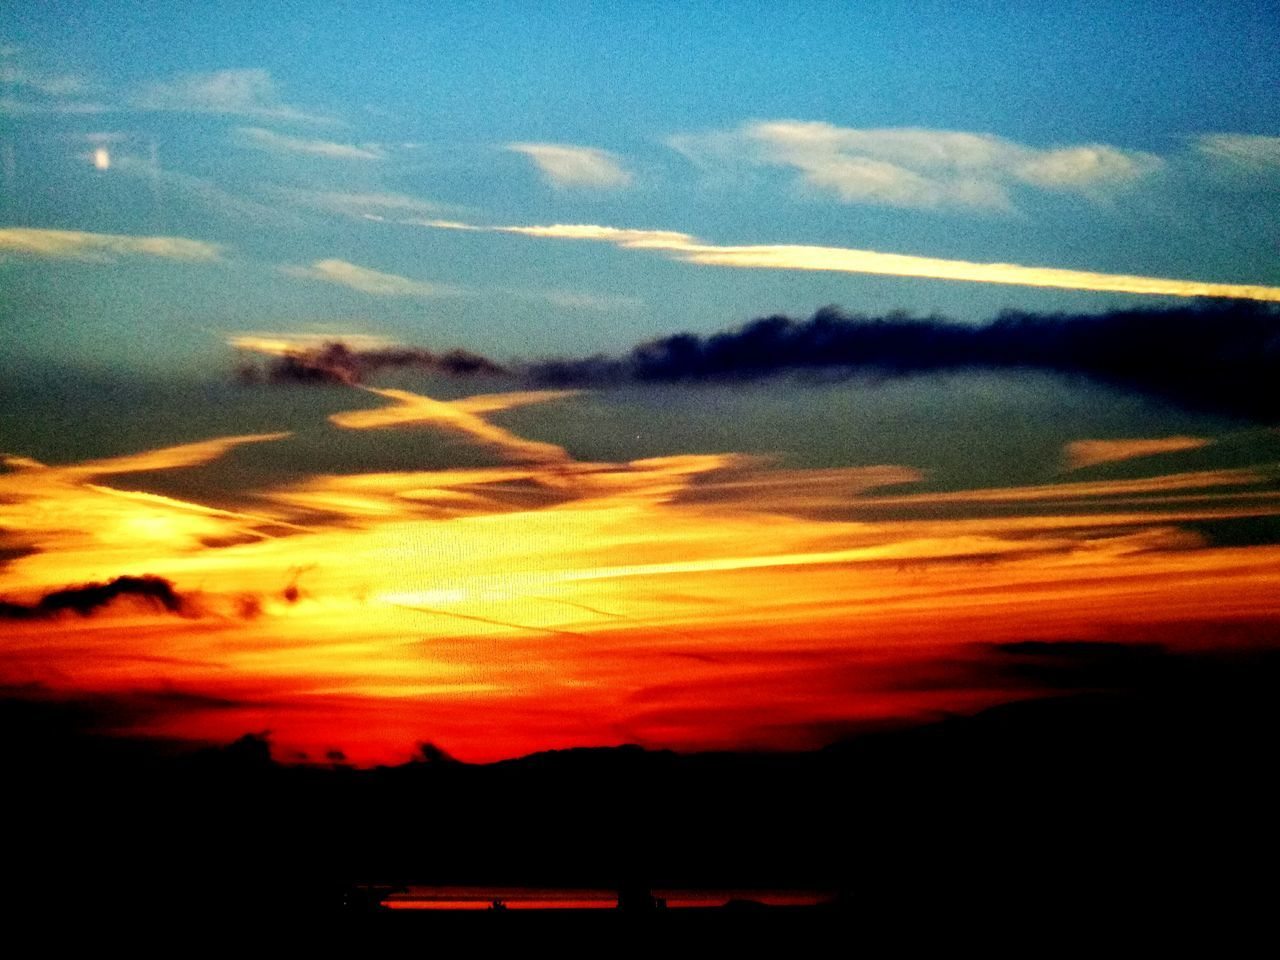 sunset, sky, nature, beauty in nature, scenics, silhouette, tranquility, cloud - sky, tranquil scene, no people, outdoors